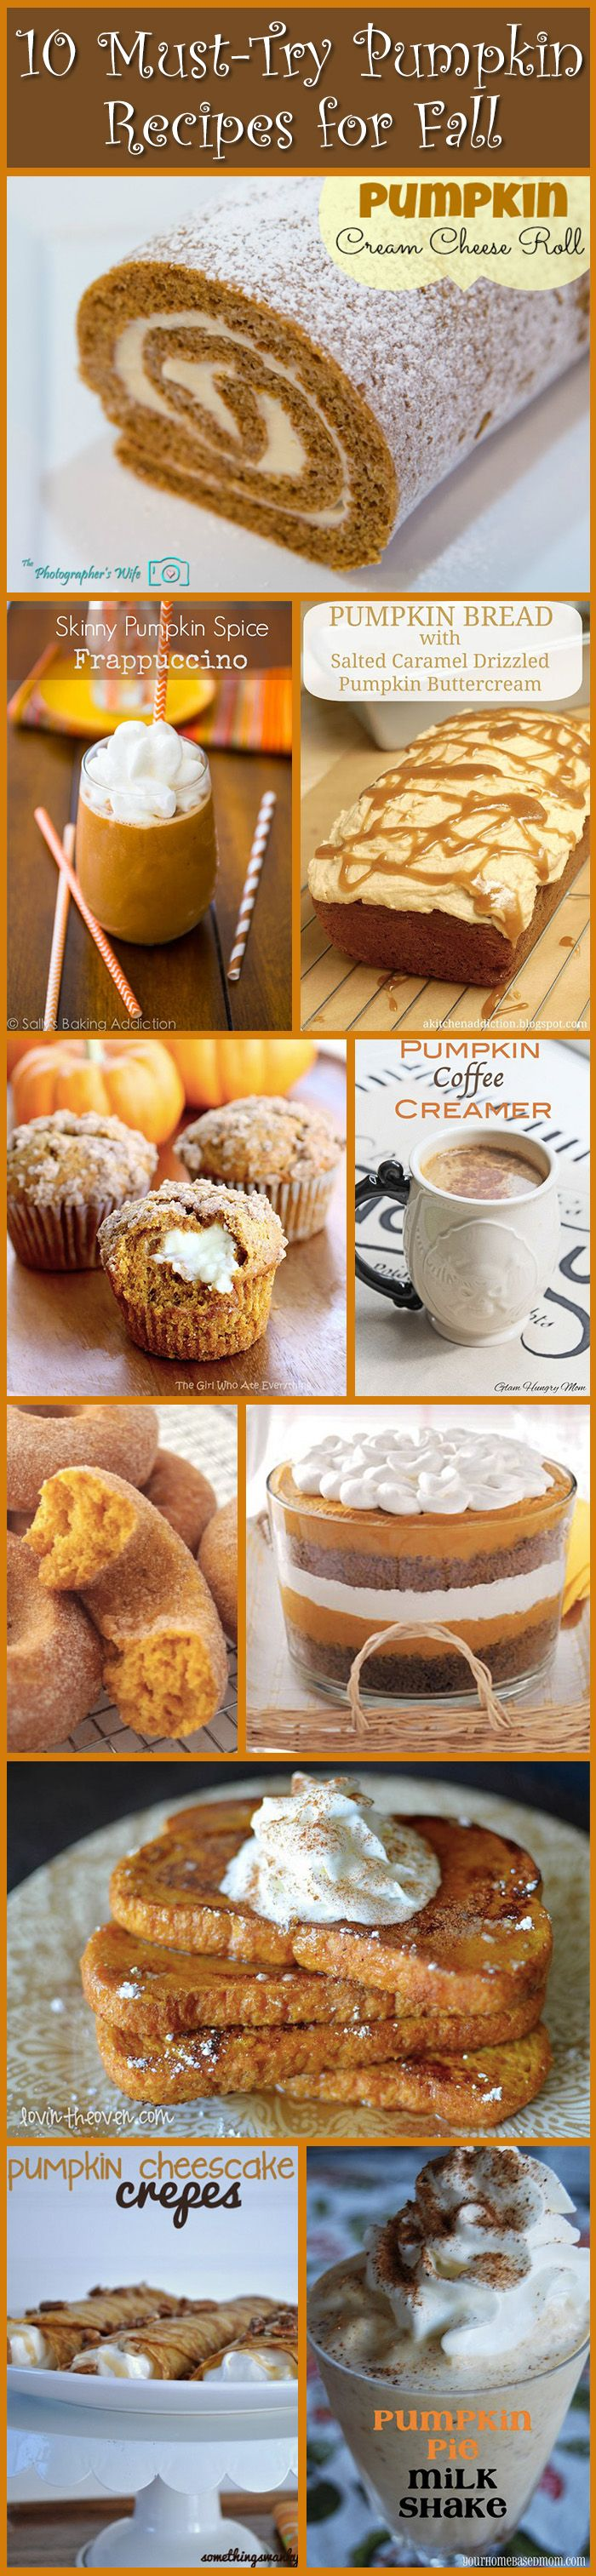 10 MUST-TRY pumpkin recipes for Fall!